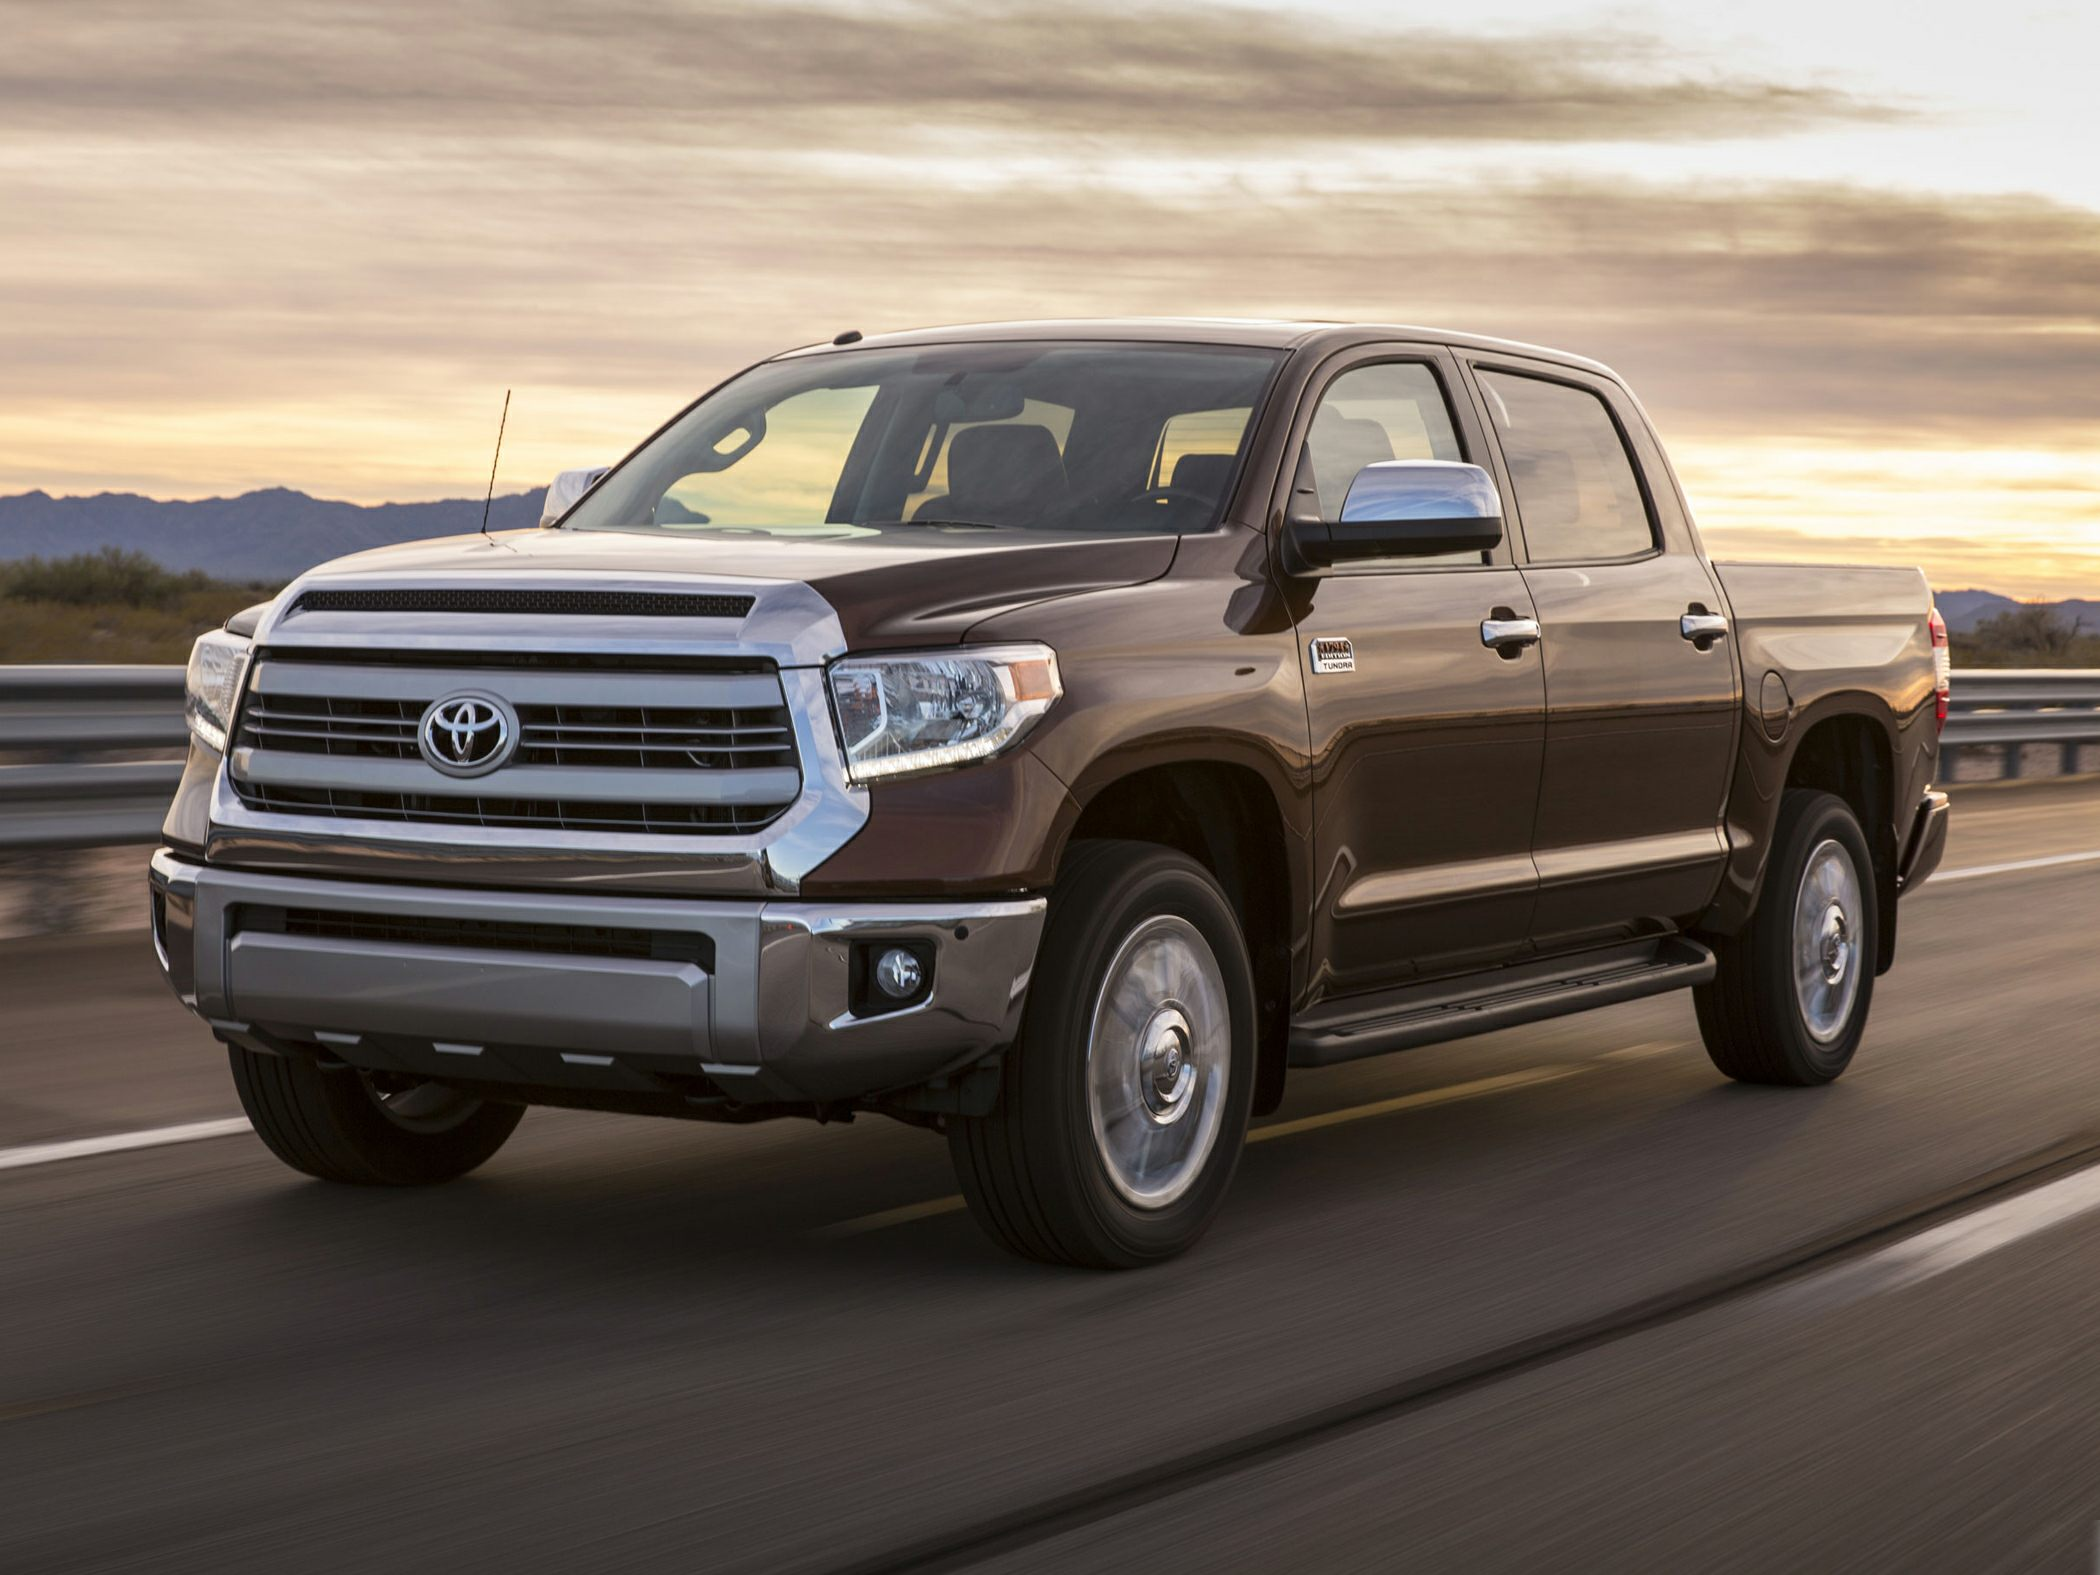 2017 toyota tundra deals prices incentives leases overview carsdirect. Black Bedroom Furniture Sets. Home Design Ideas